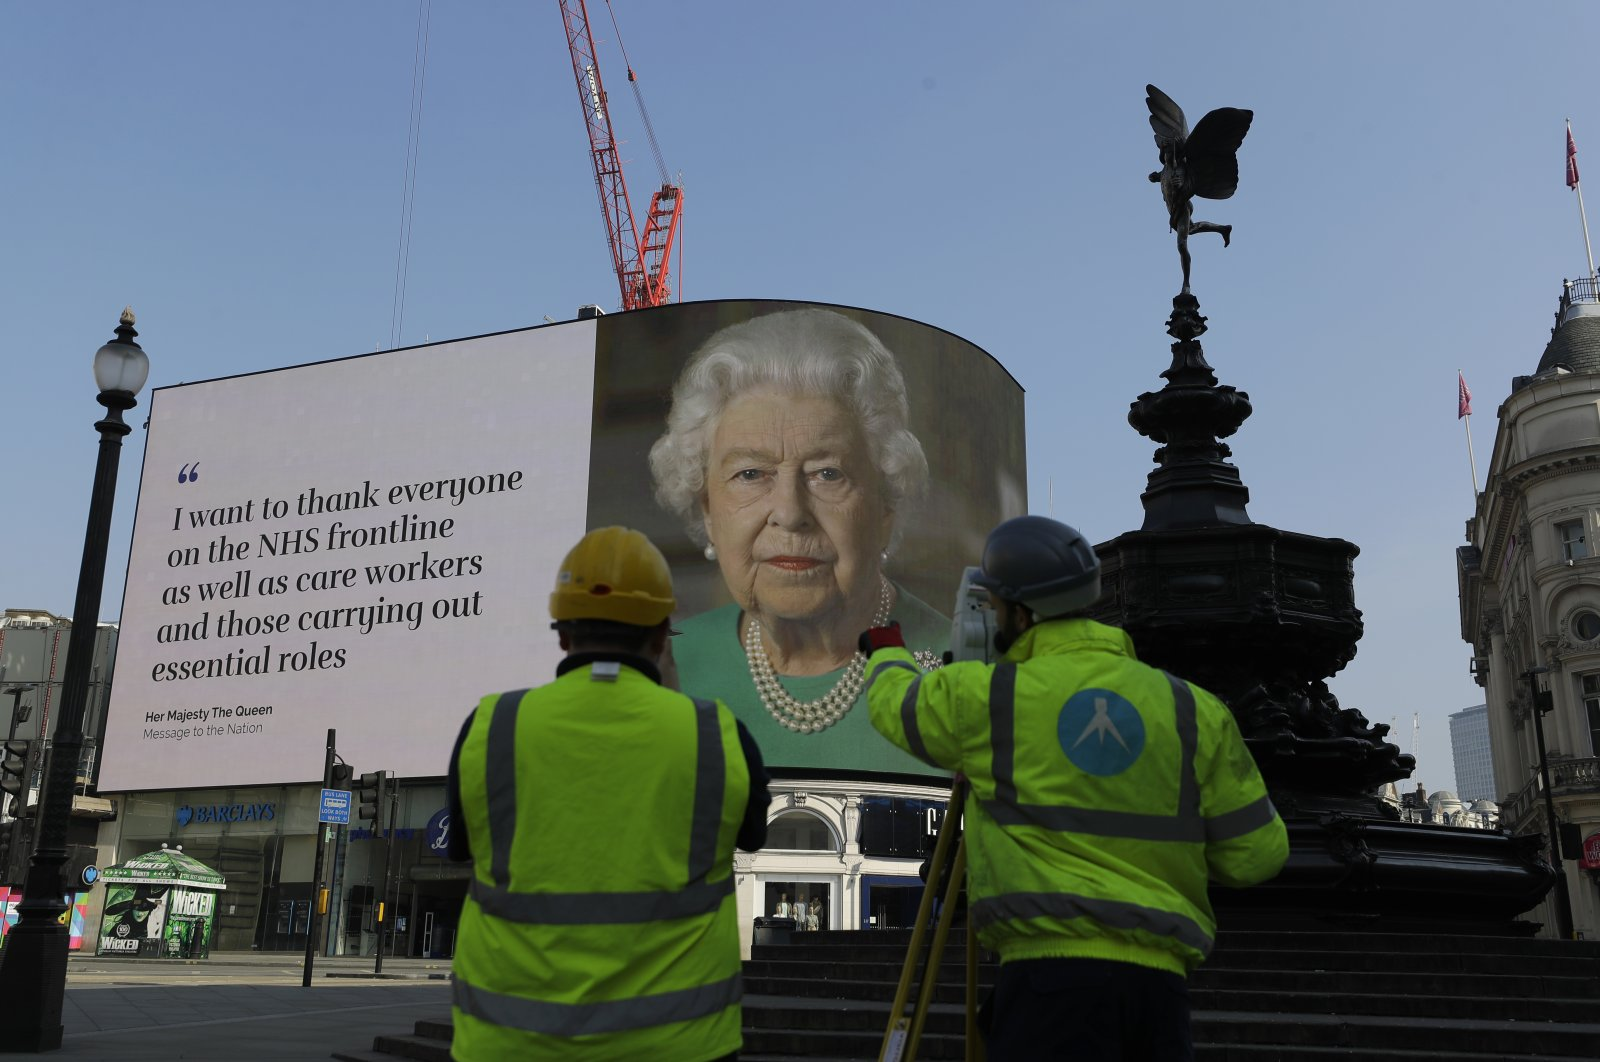 An image of Britain's Queen Elizabeth II and quotes from her historic television broadcast commenting on the coronavirus pandemic are displayed on a big screen behind the Eros statue at Piccadilly Circus in London, April 9, 2020. (AP Photo)